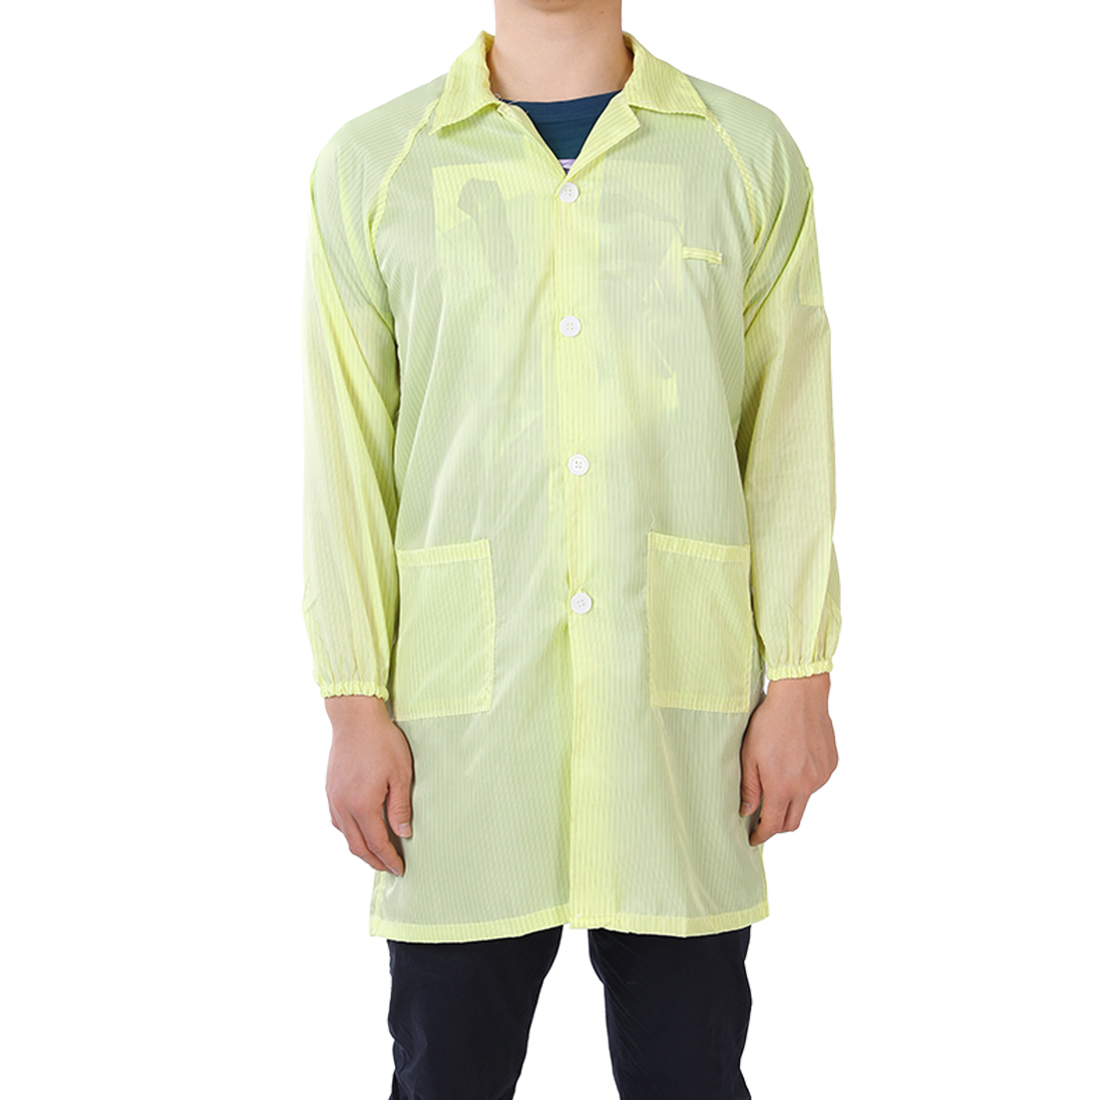 Anti Static Overalls Unisex ESD Lab Coat Button Up XL Yellow